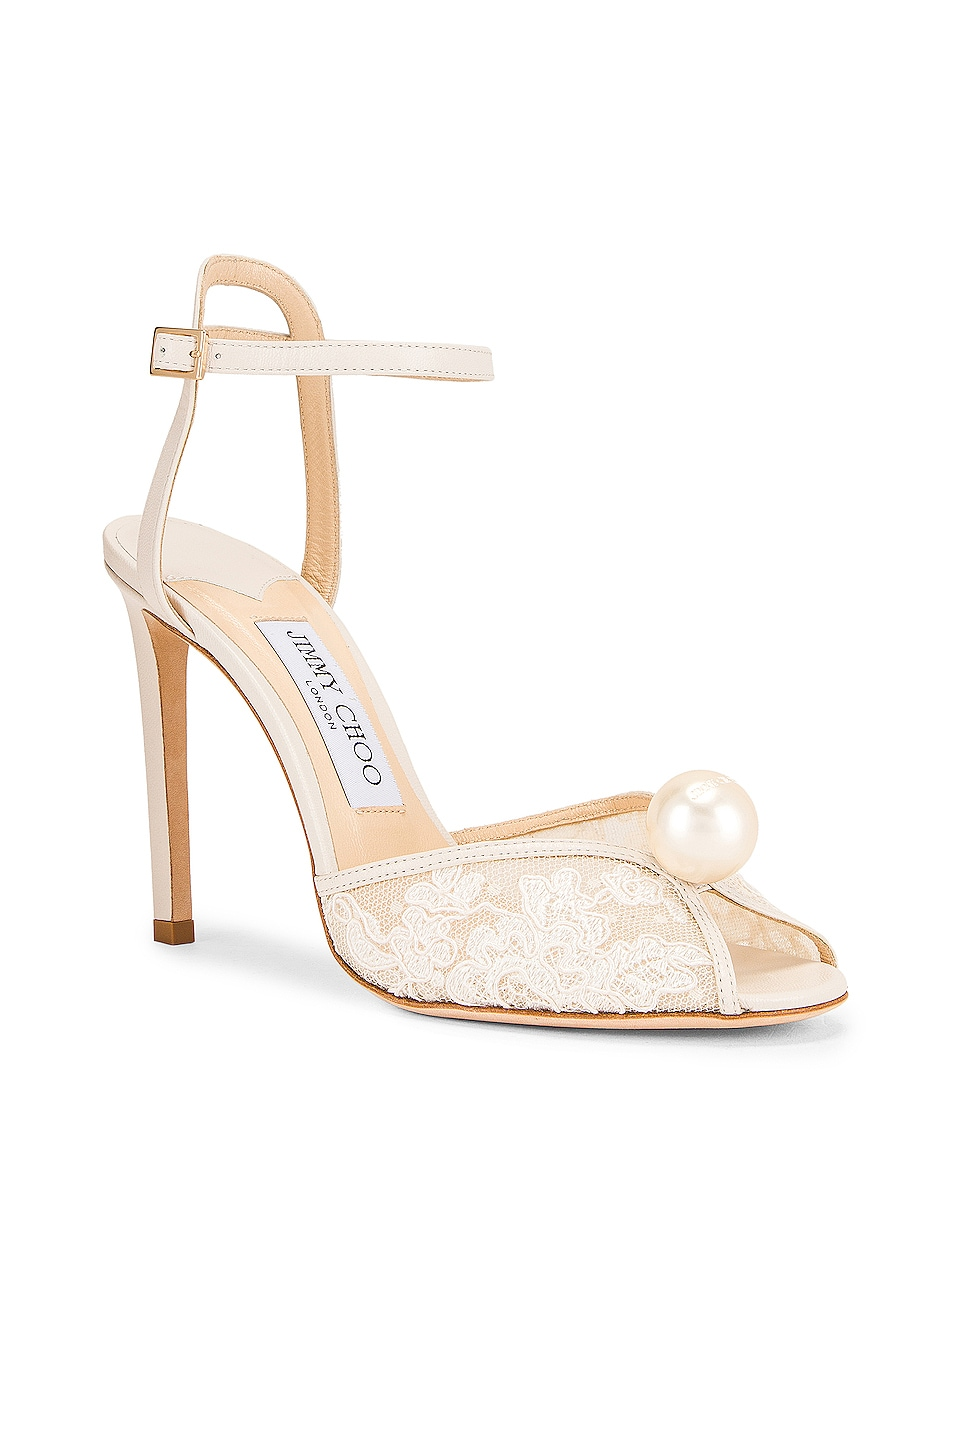 Image 2 of Jimmy Choo Sacora 100 Floral Lace with Pearl Sandal in White